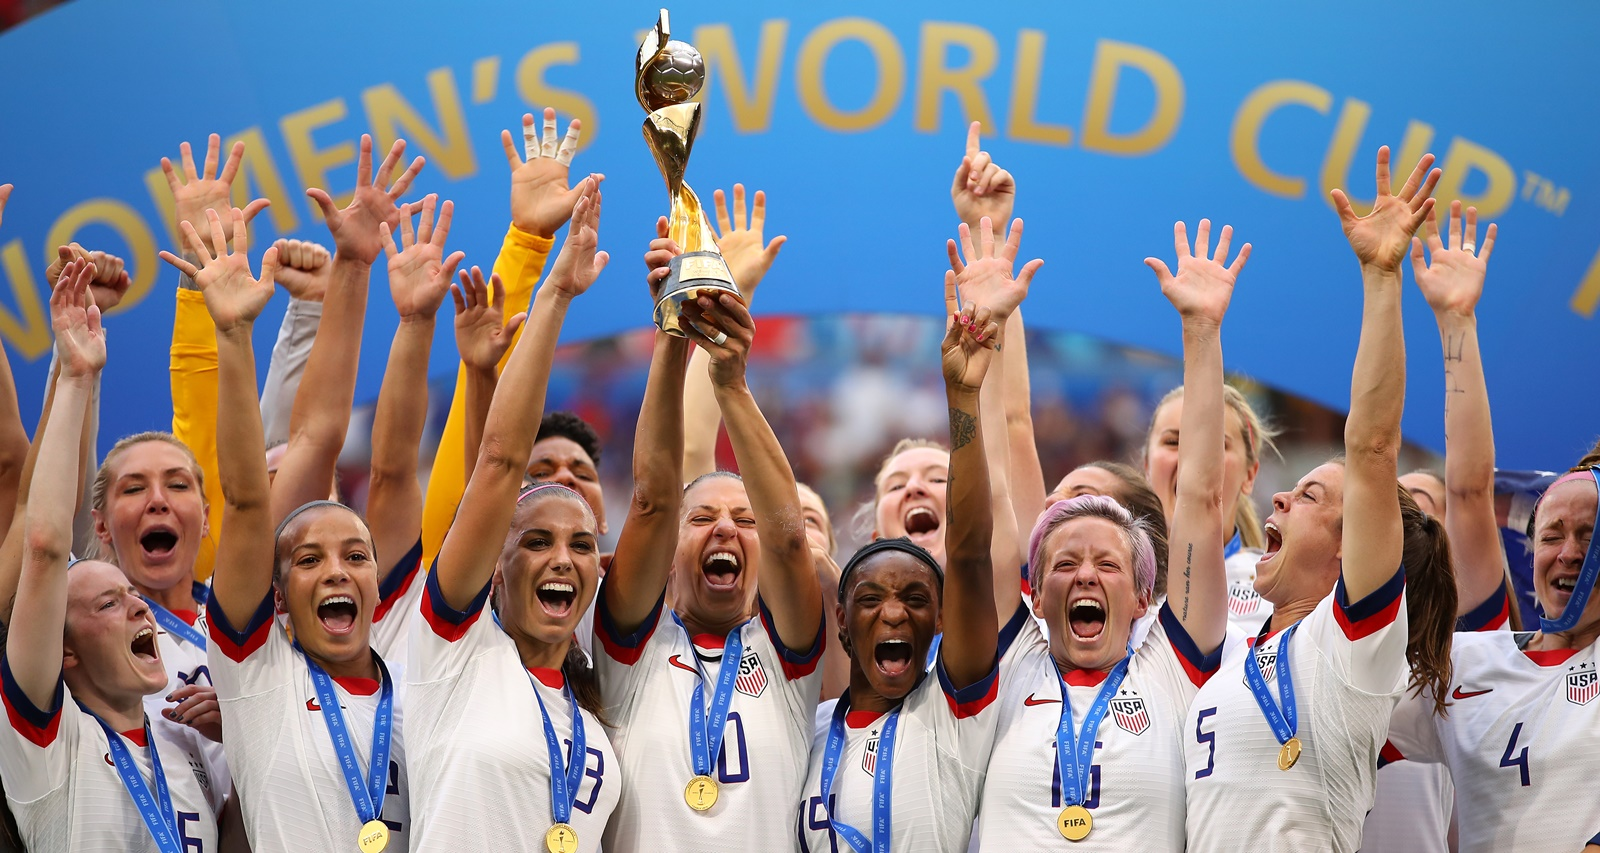 2019 U S Women S Soccer Team Net Worth List How Much Do They Make